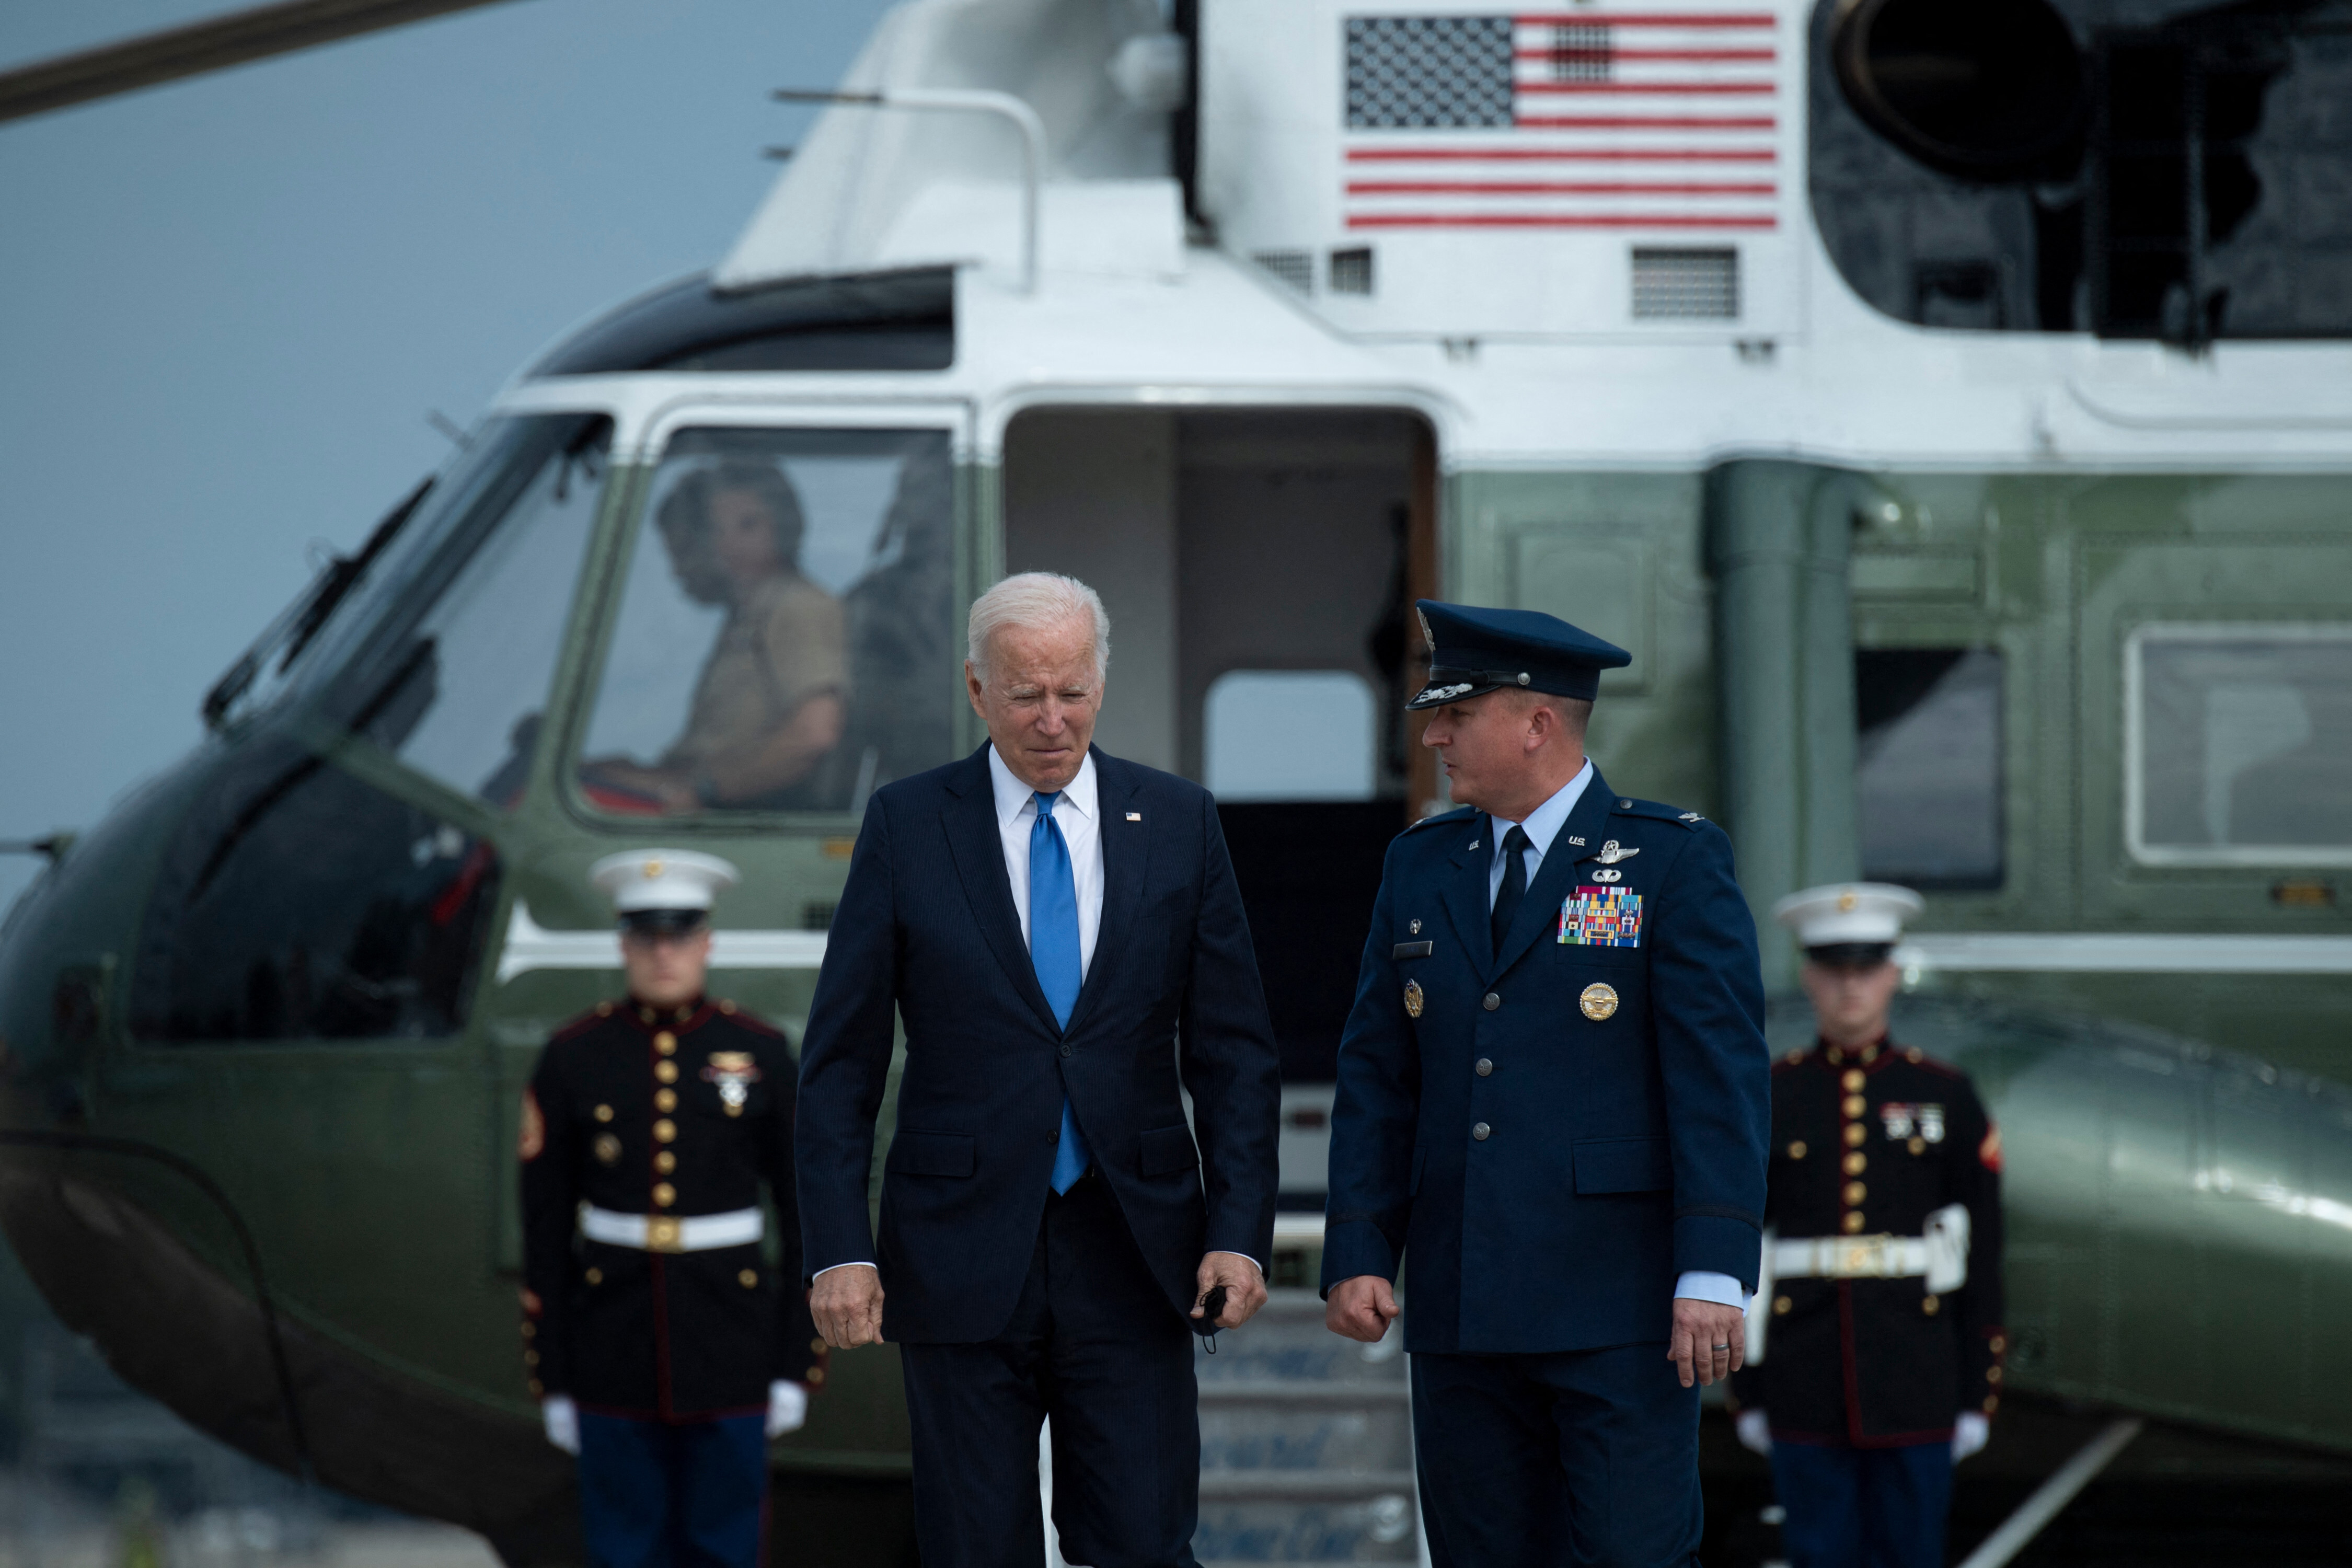 Biden gives some clues on potential compromises to his social safety net plan